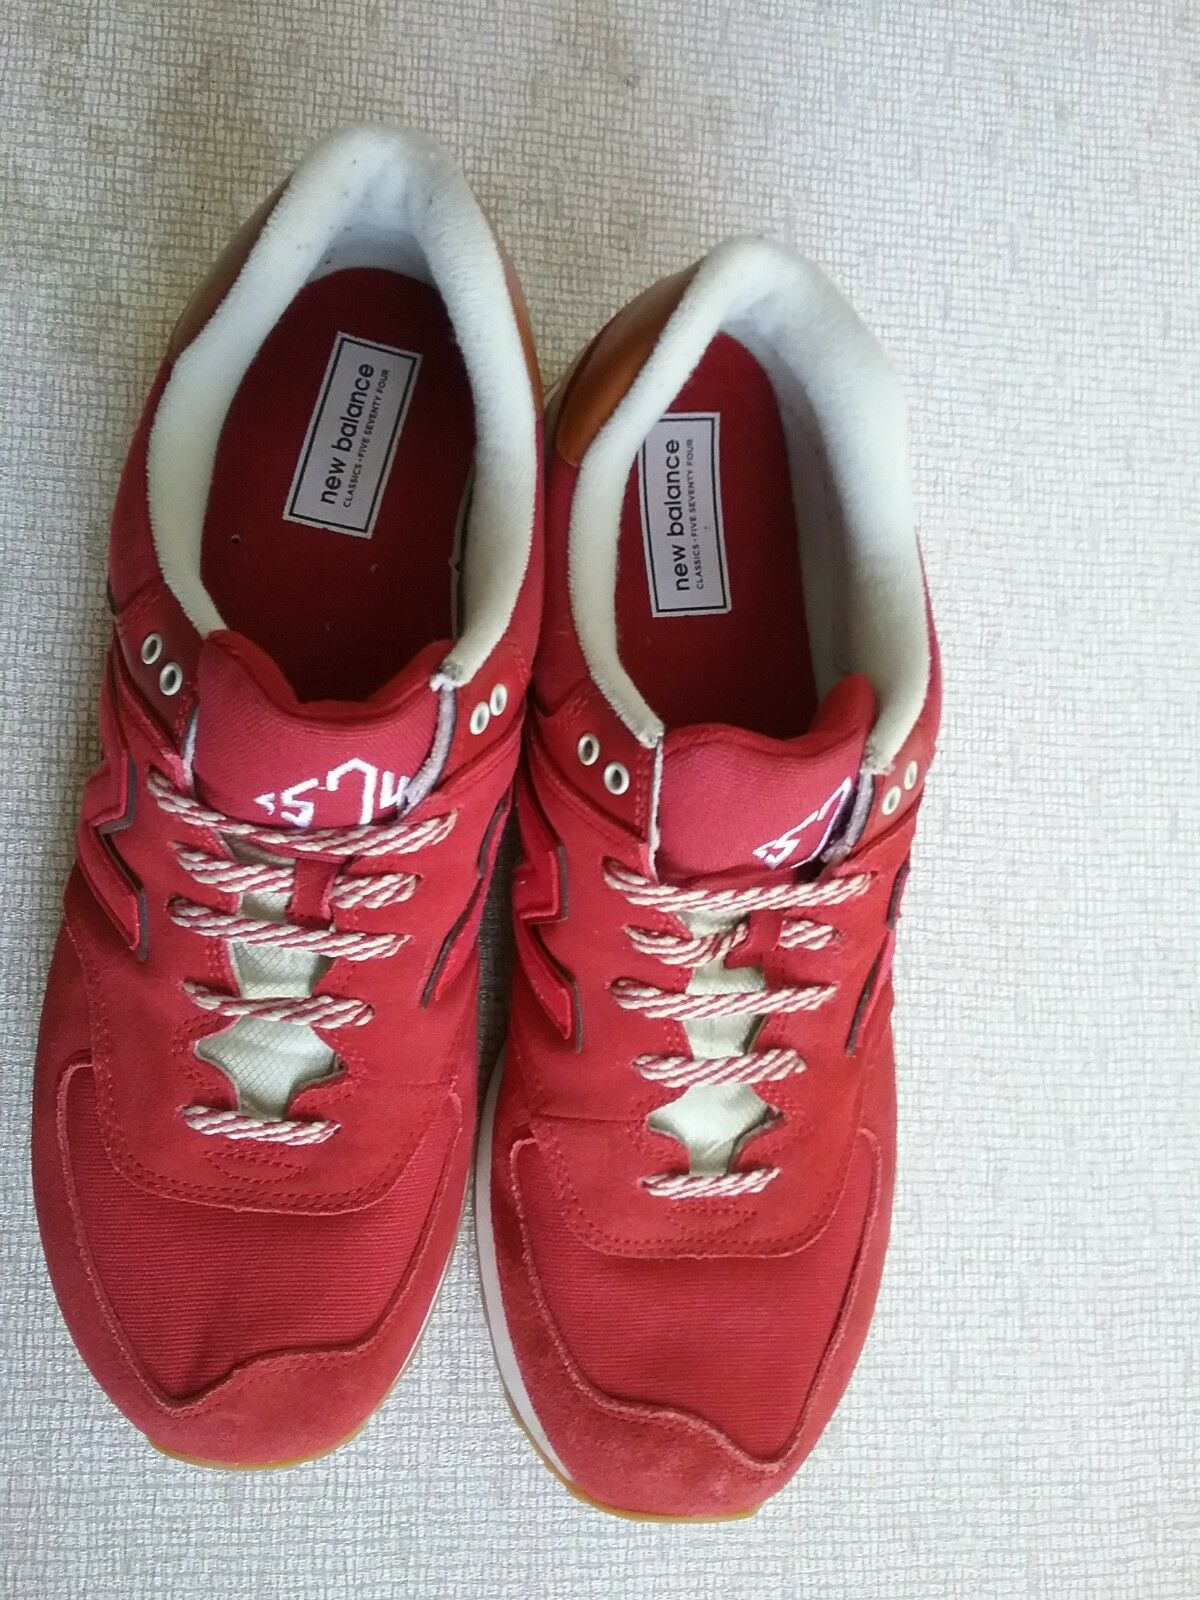 Men's New Balance Sneakers 574 US Size Size 13 Medium Red